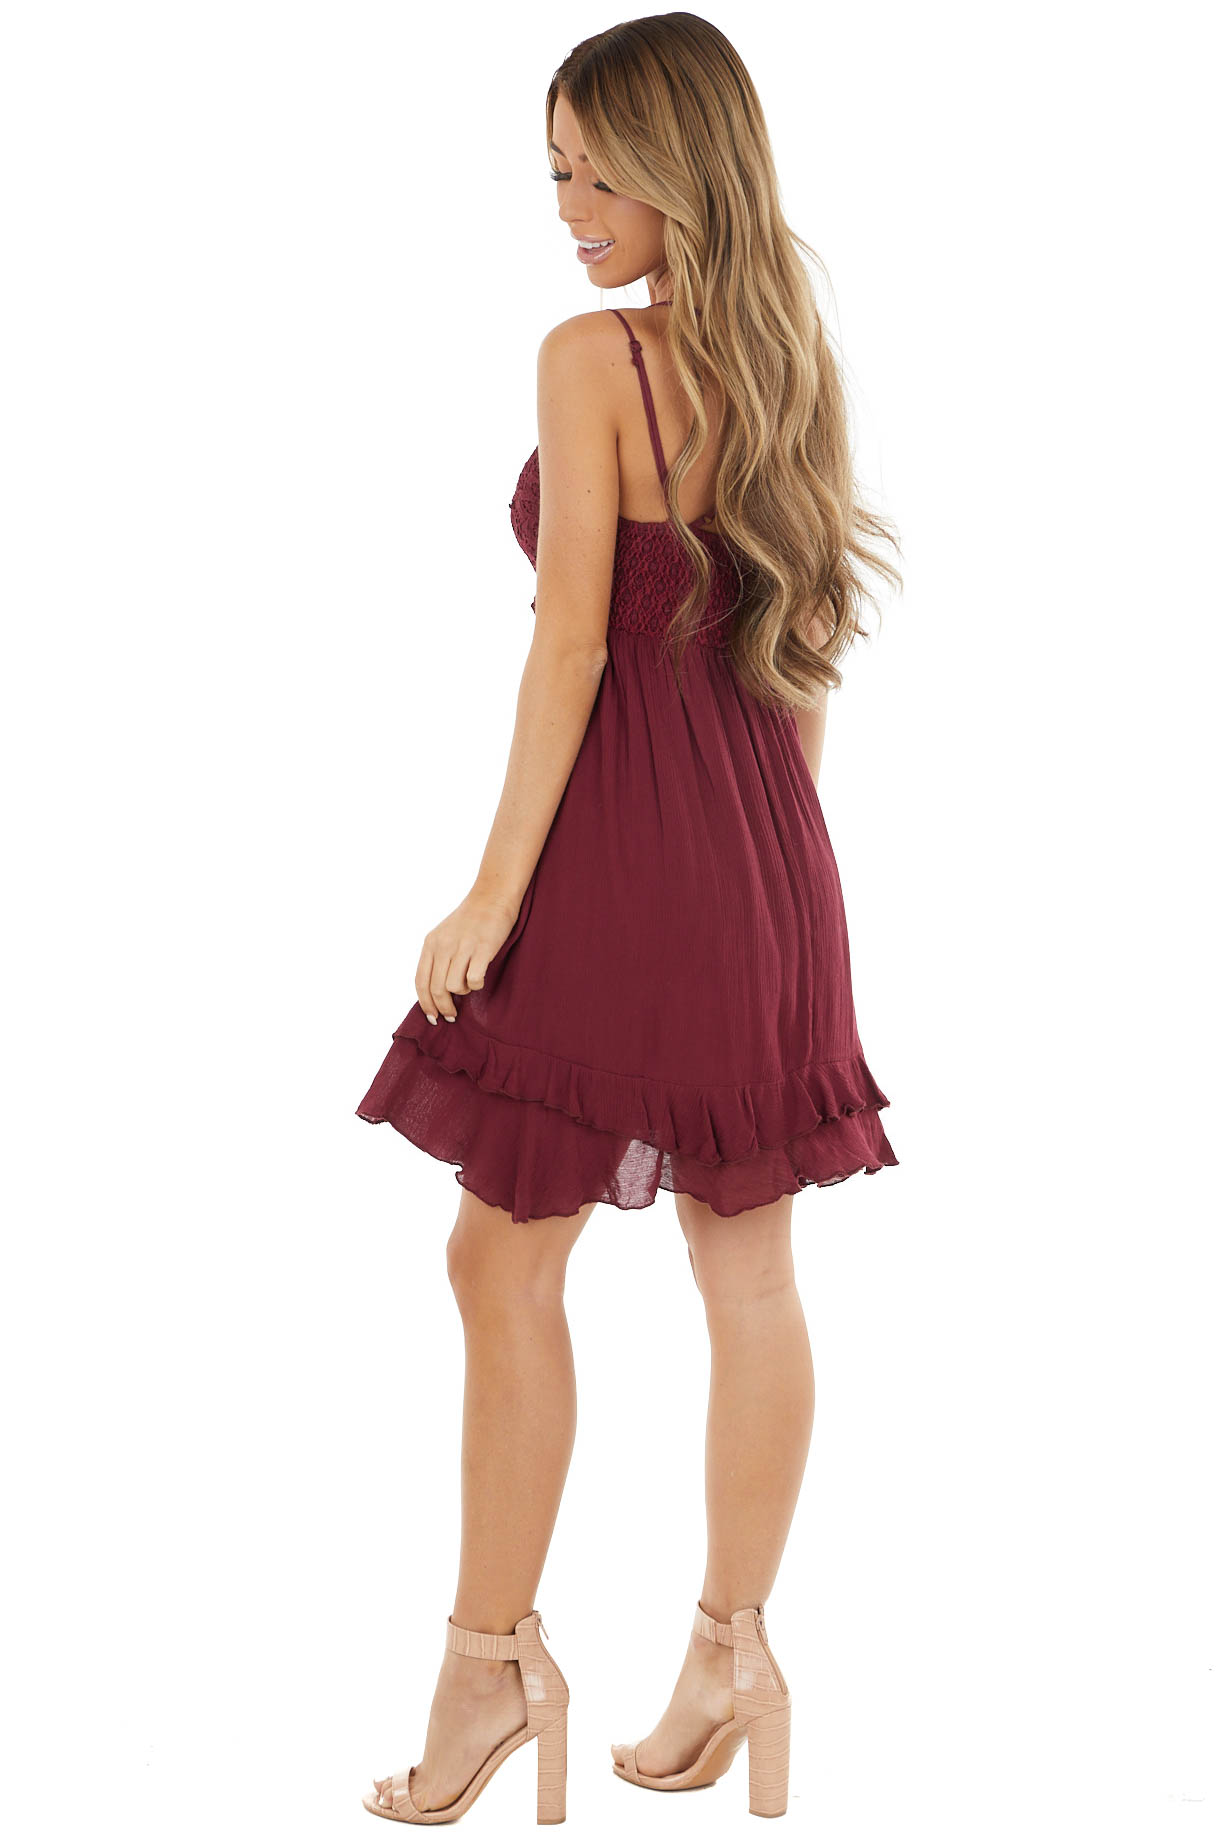 Maroon Crochet Lace Babydoll Dress with Tiered Ruffle